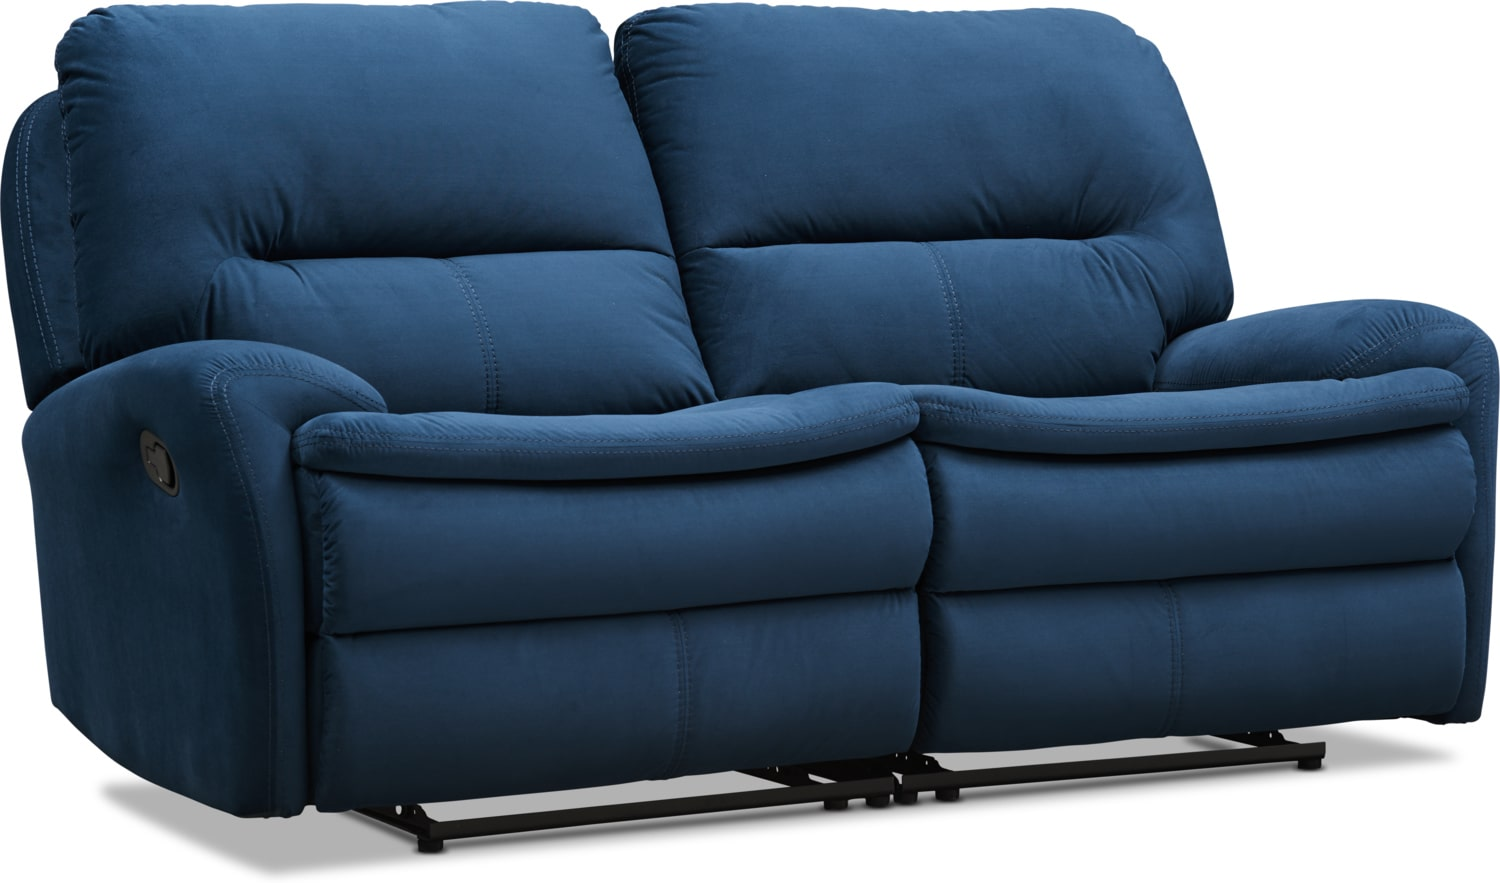 Living Room Furniture - Cruiser 2-Piece Manual Reclining Loveseat - Ink